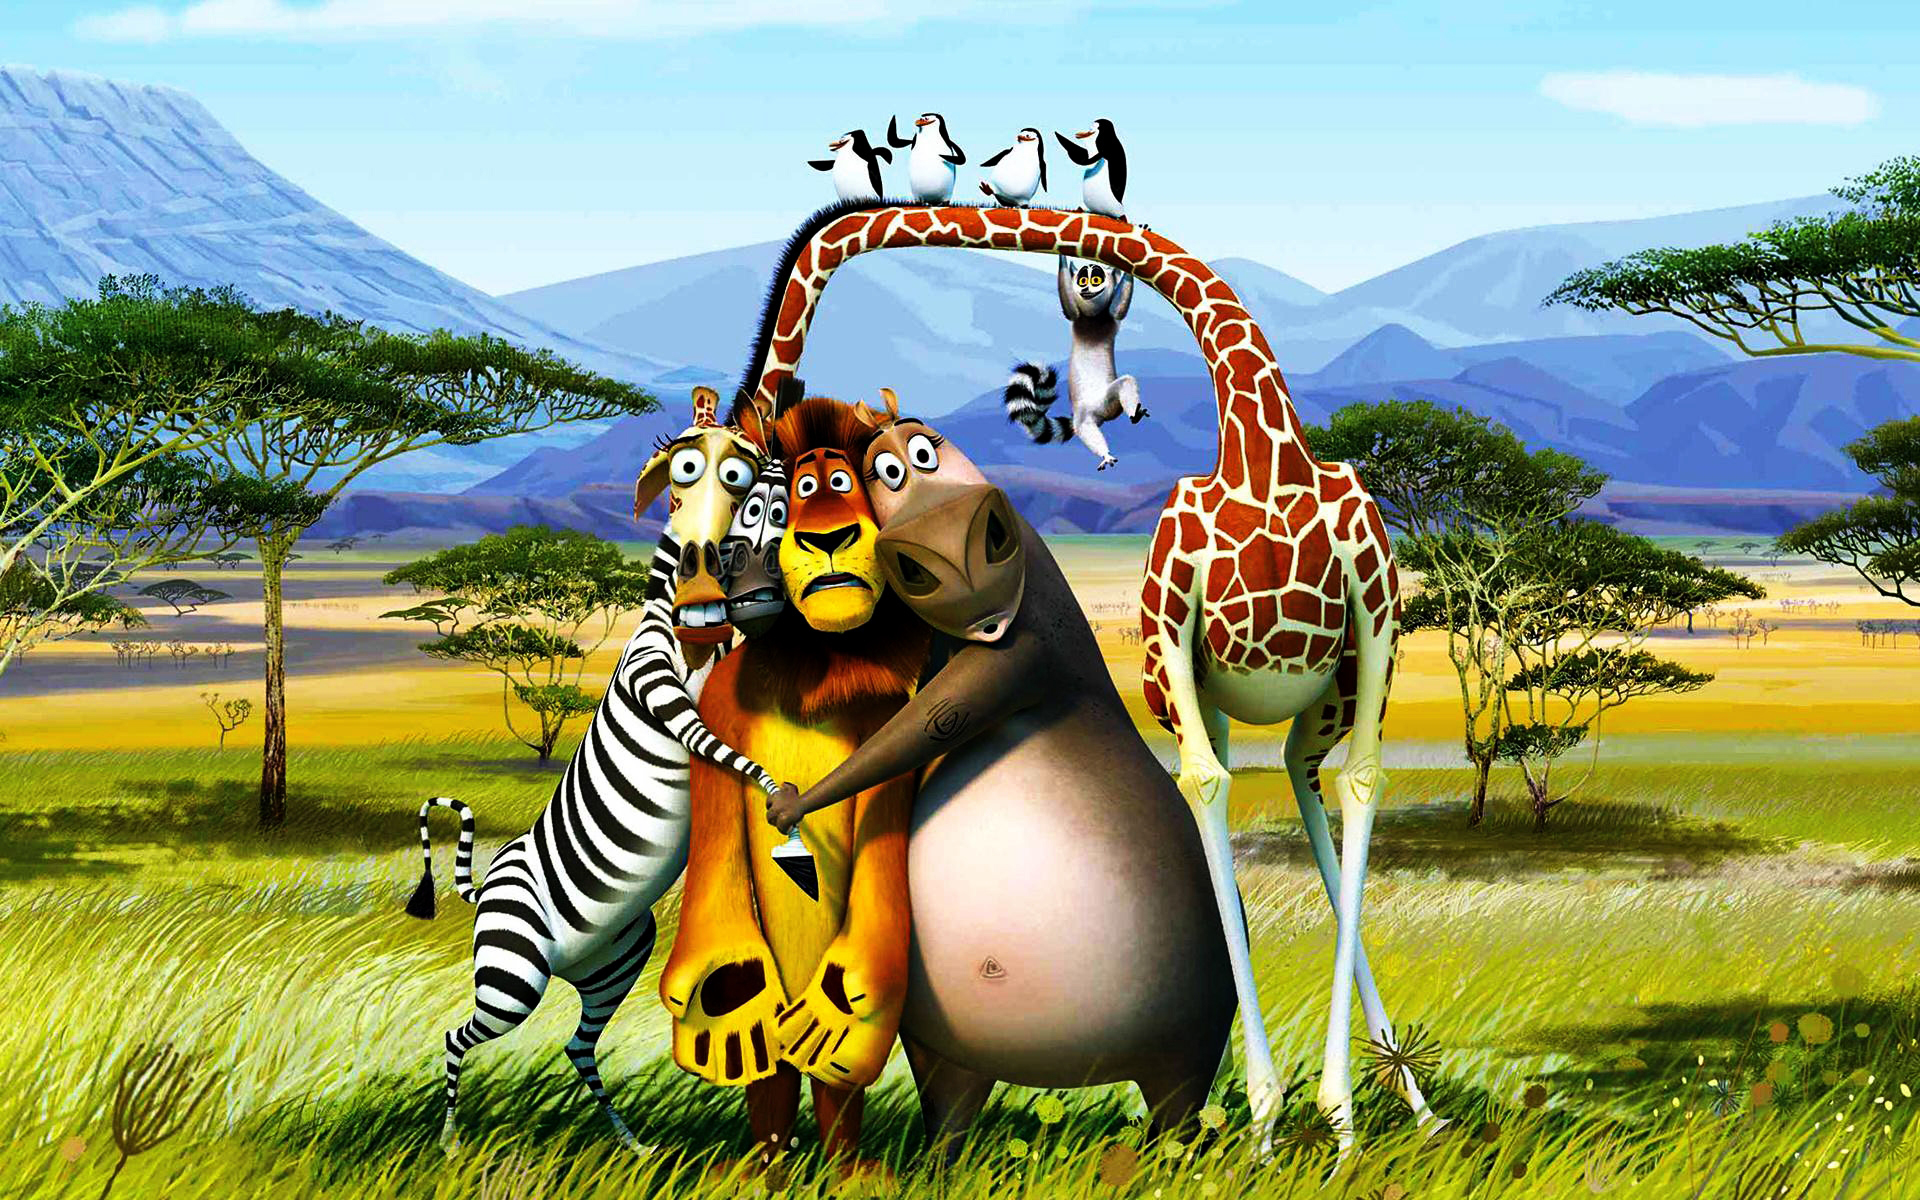 Hd wallpaper download for pc - Madagascar 3 Europe S Most Wanted Hd Wallpapers